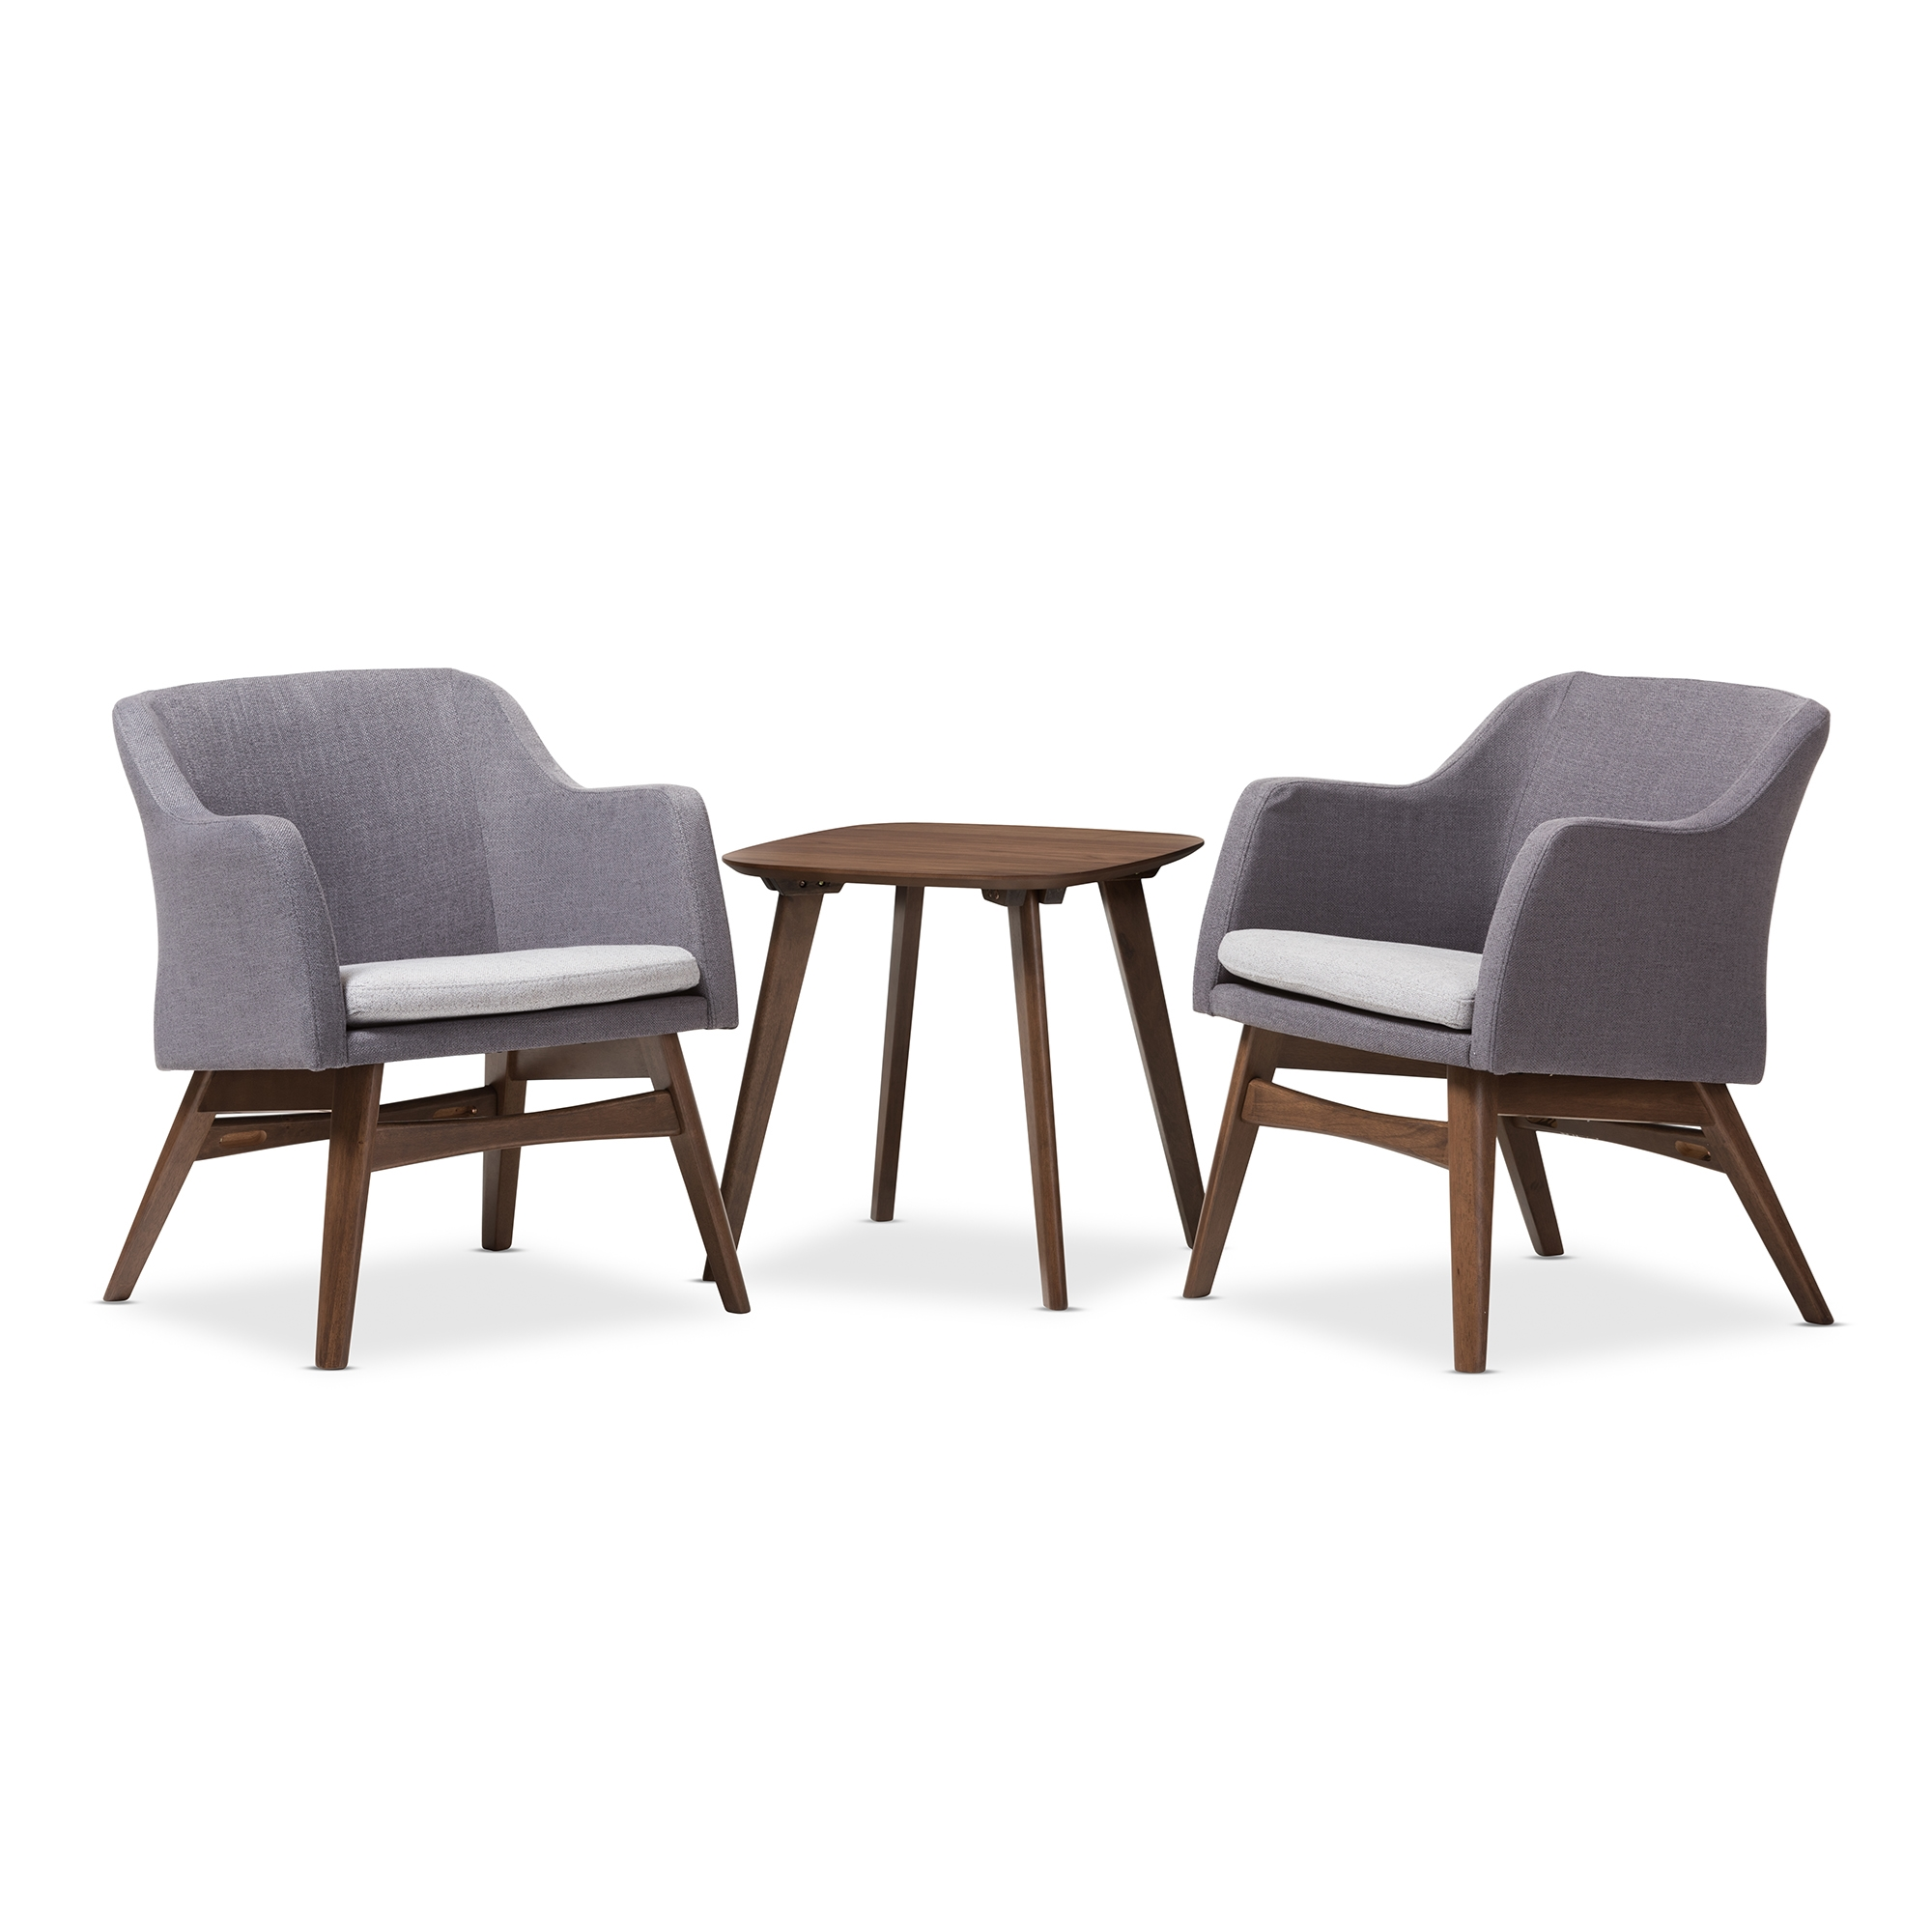 Etonnant Baxton Studio Vera Mid Century Modern 3 Piece Lounge Chair And Side Table  Set